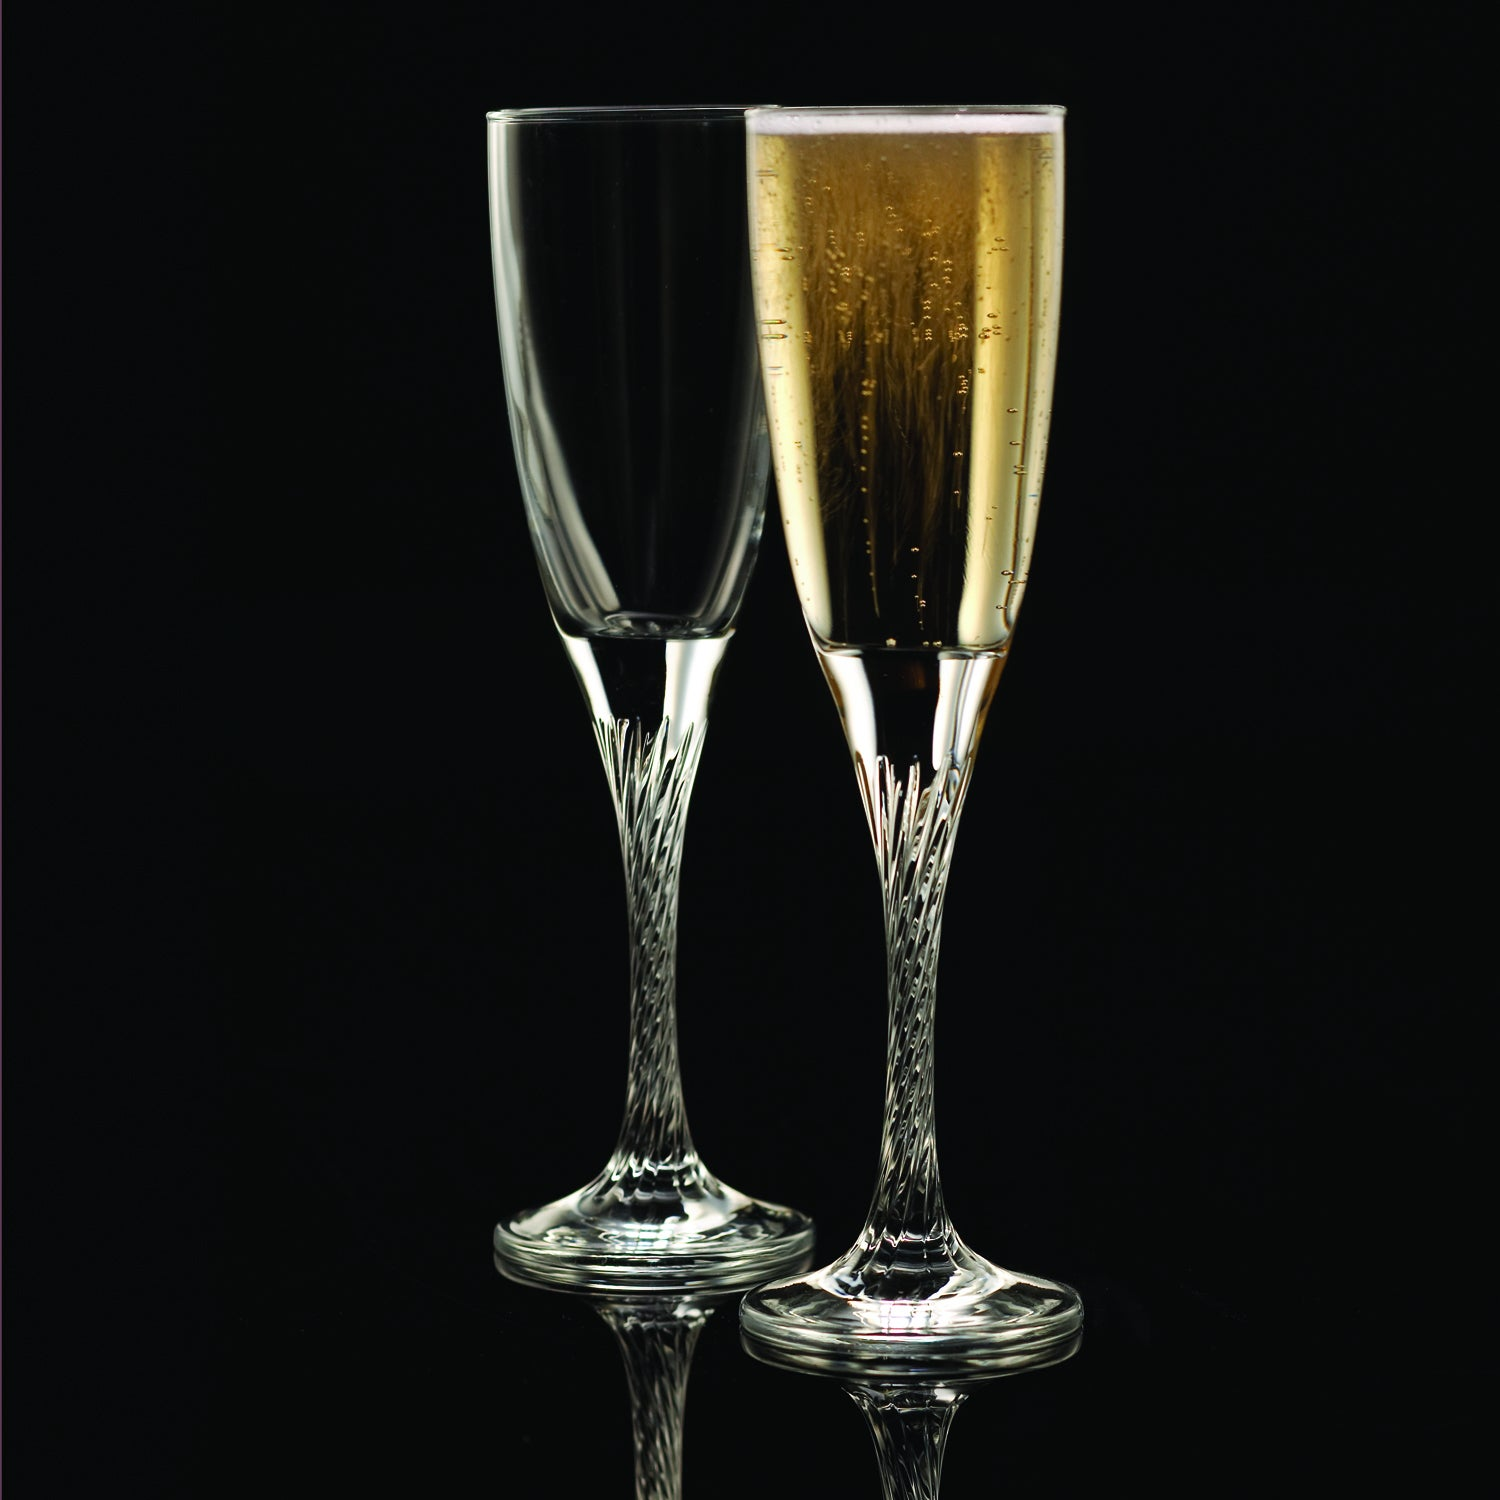 StyleSetter Private Party Twist Stem Flutes (Set of 2)